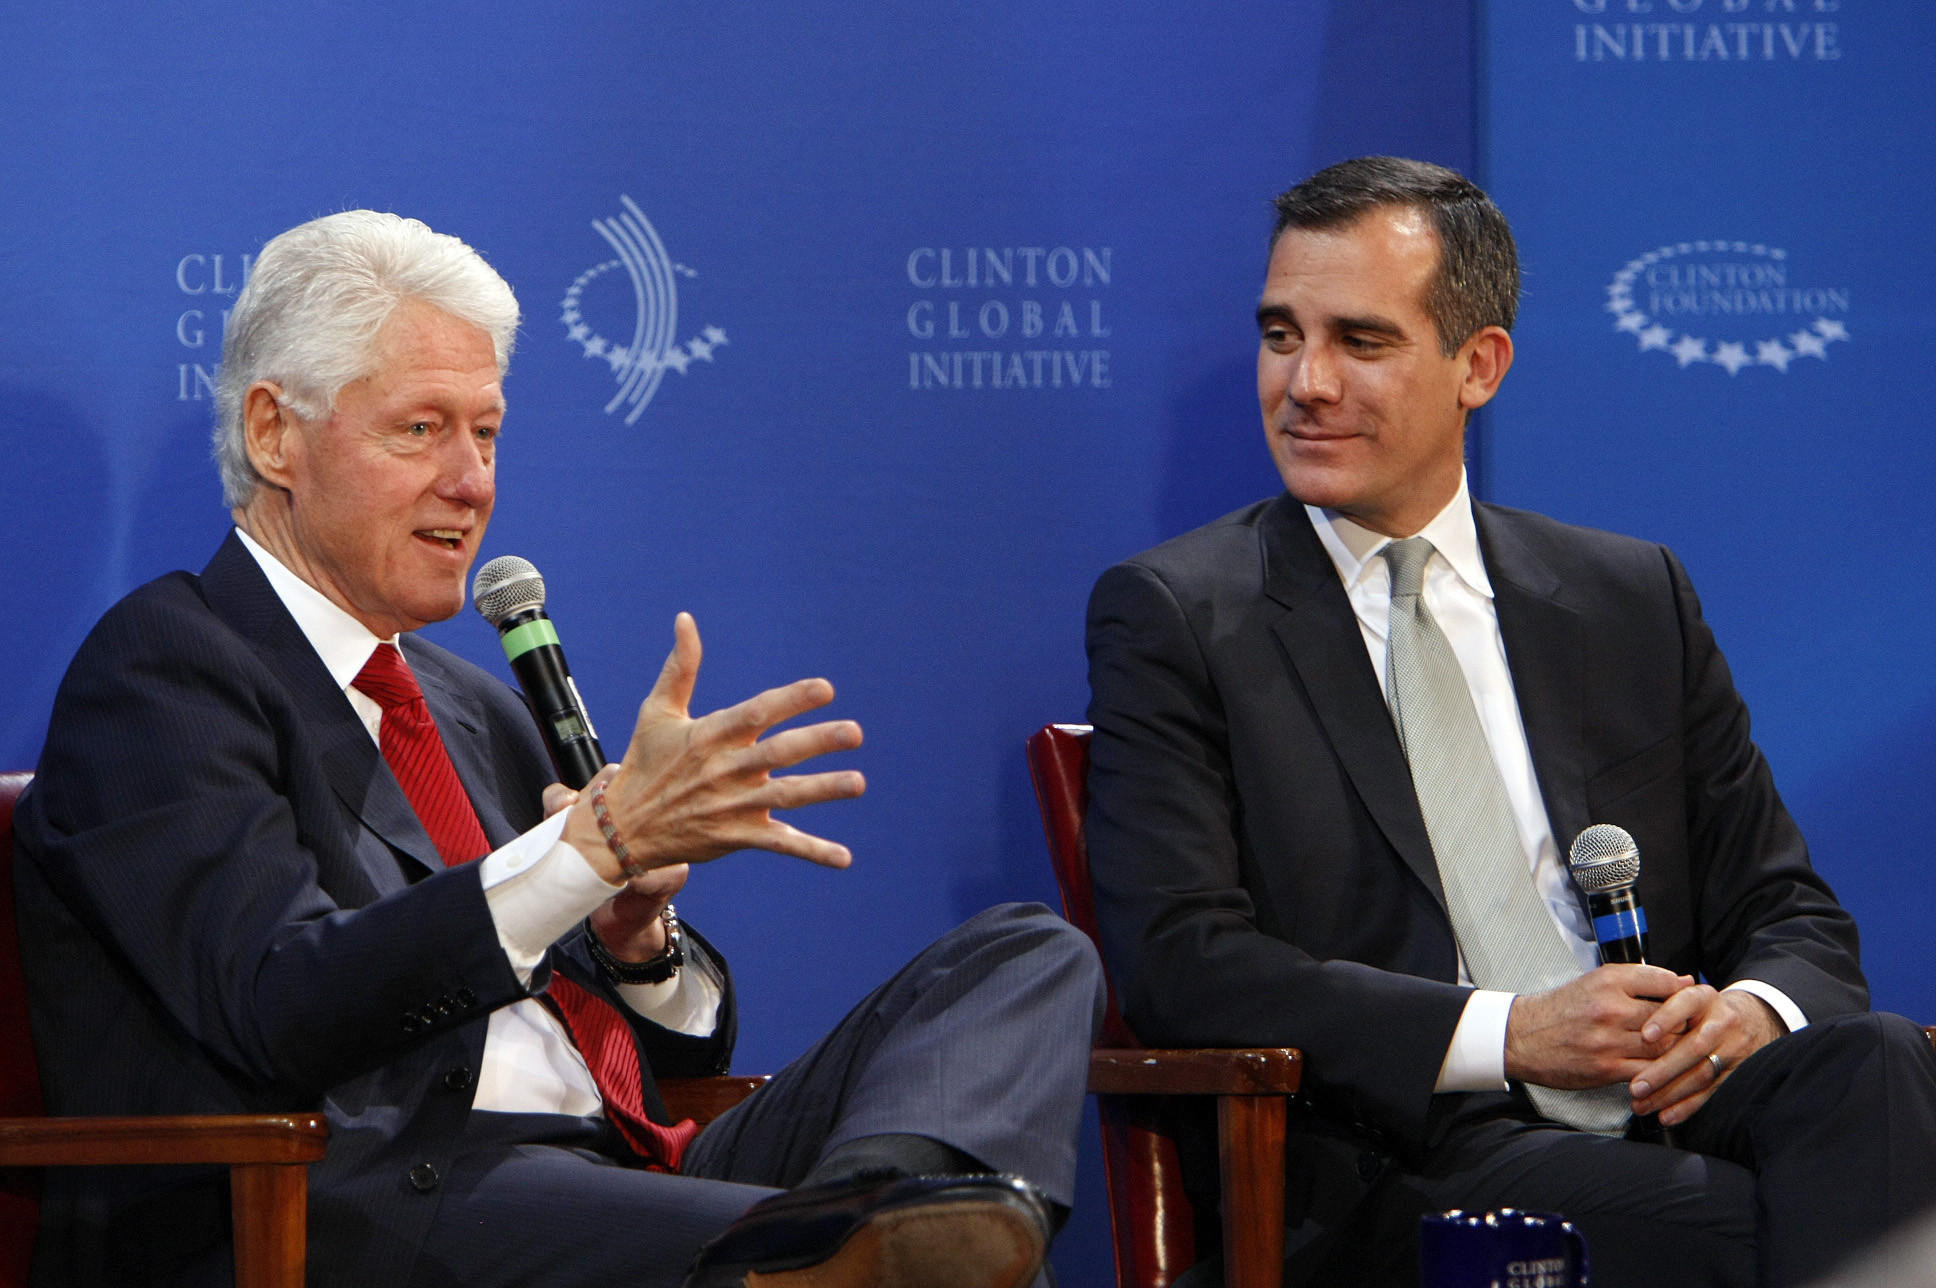 Former President Bill Clinton, left, and Los Angeles Mayor Eric Garcetti during the Clinton Global Initiative forum on public infrastructure at Los Angeles City Hall.